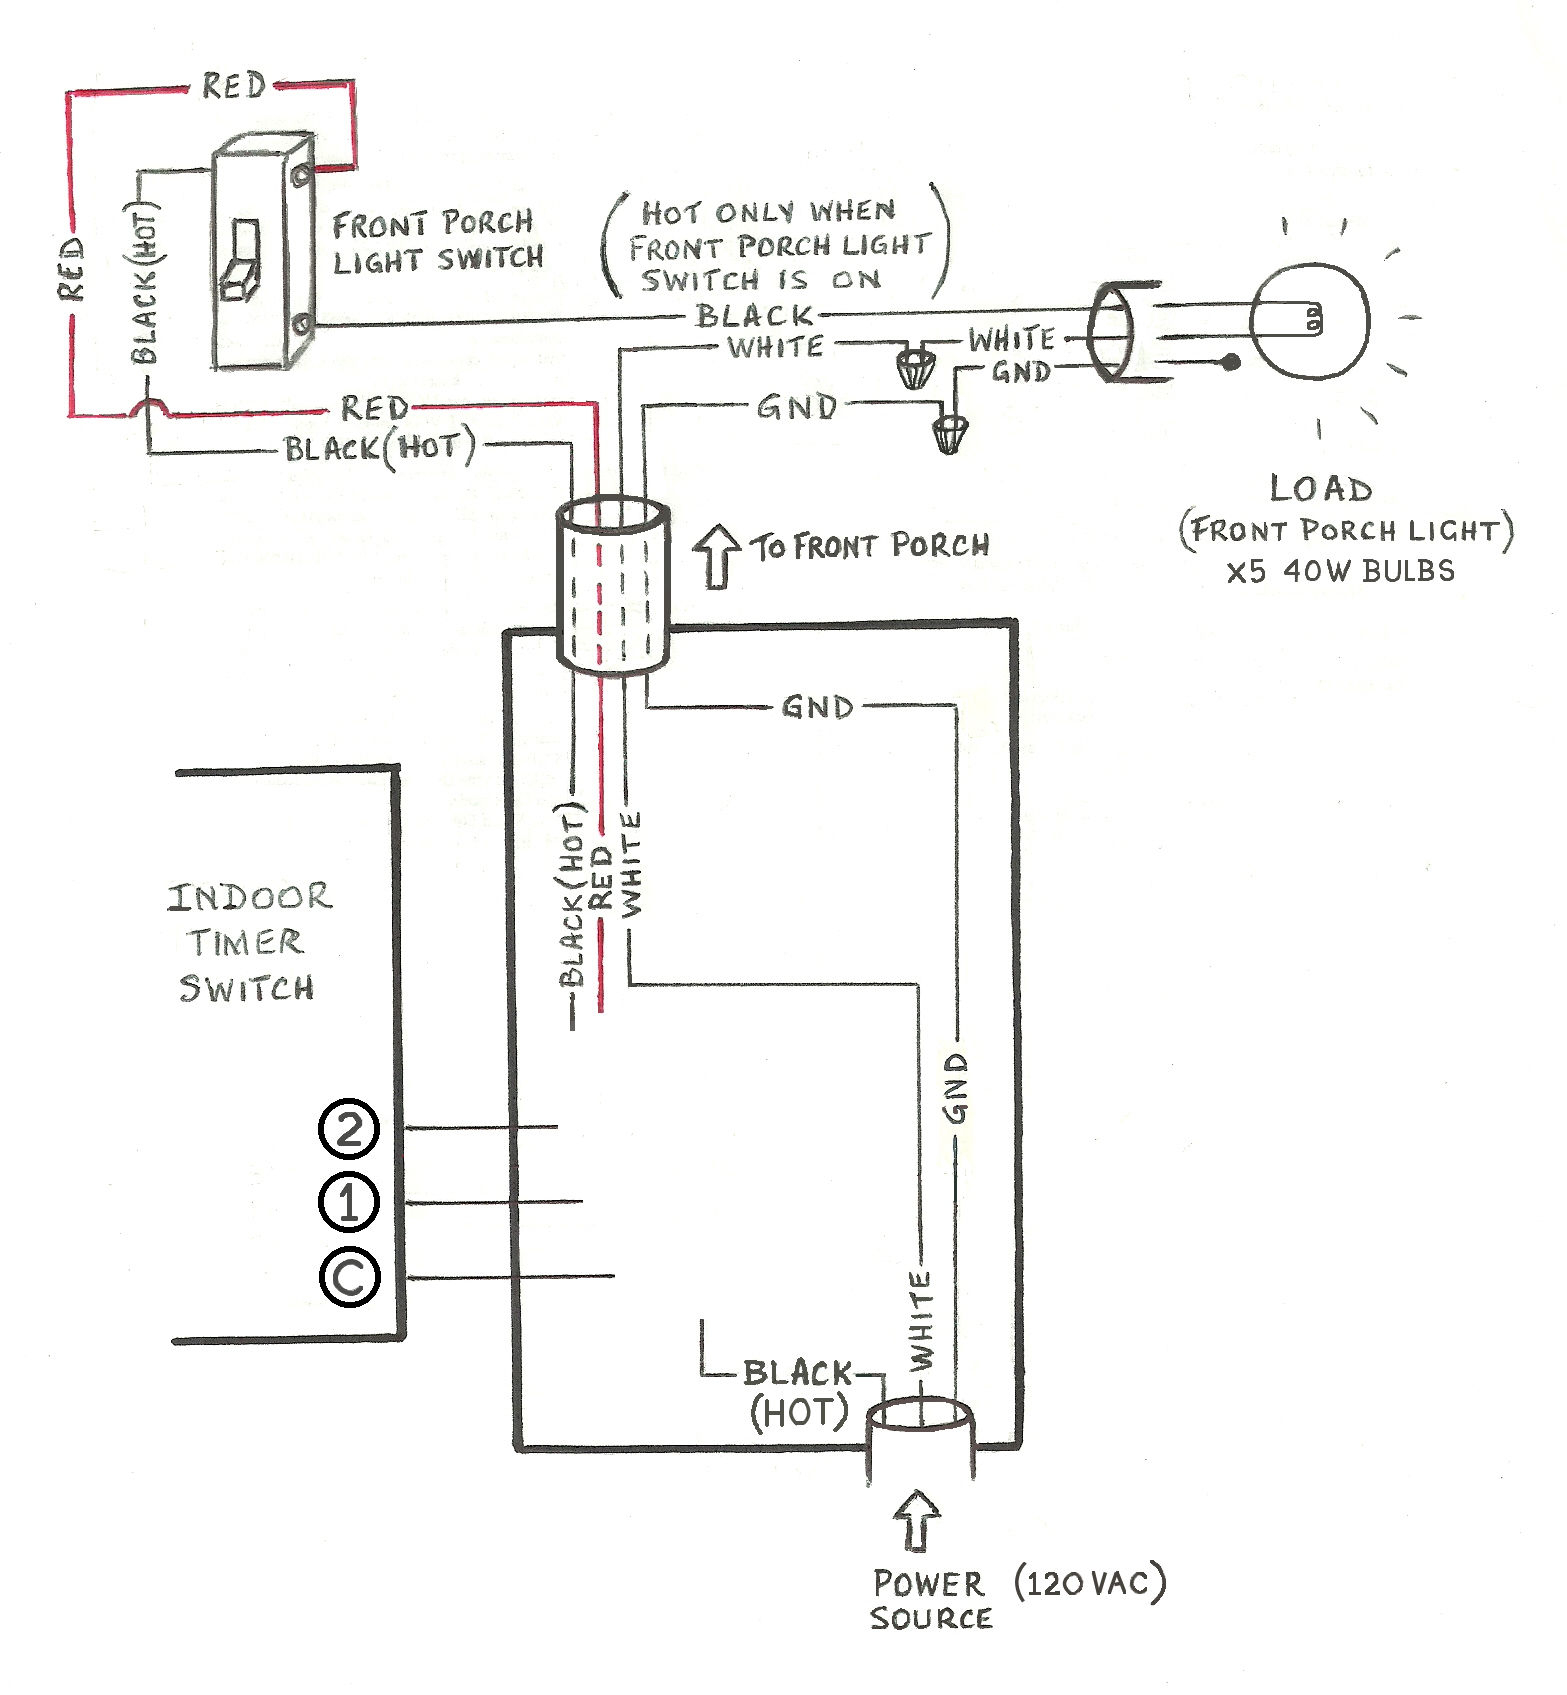 Need Help Wiring A 3-Way Honeywell Digital Timer Switch - Home - Switch Wiring Diagram